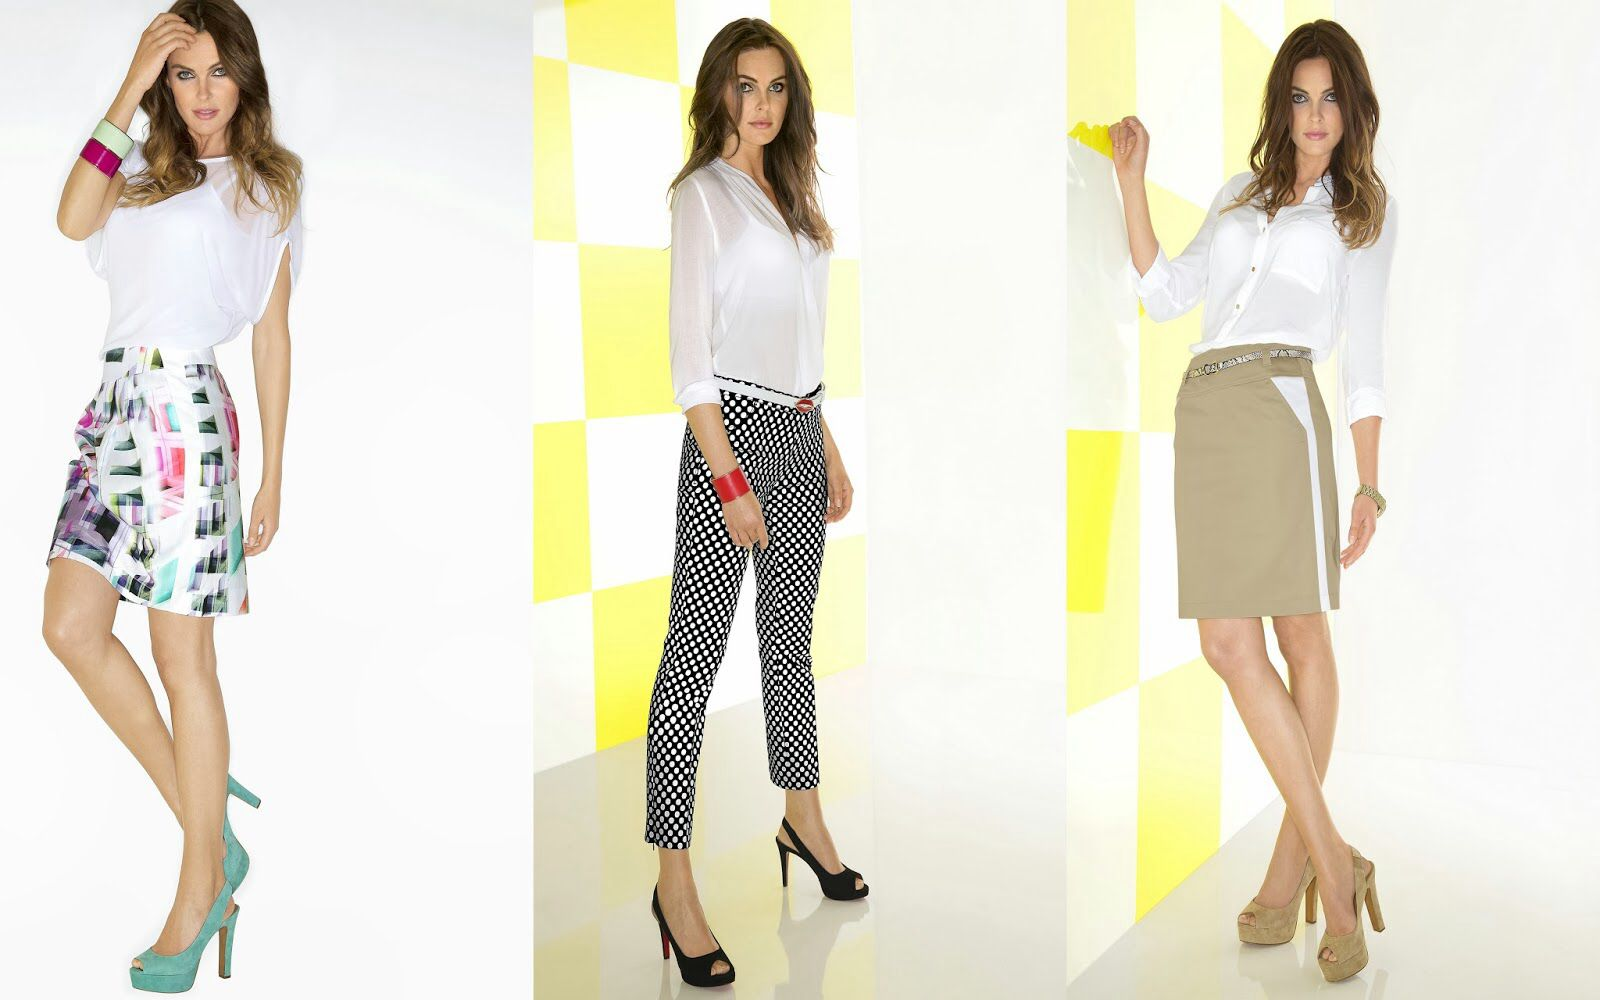 Michèle #SS14 #collection now in store #fashion #shopping